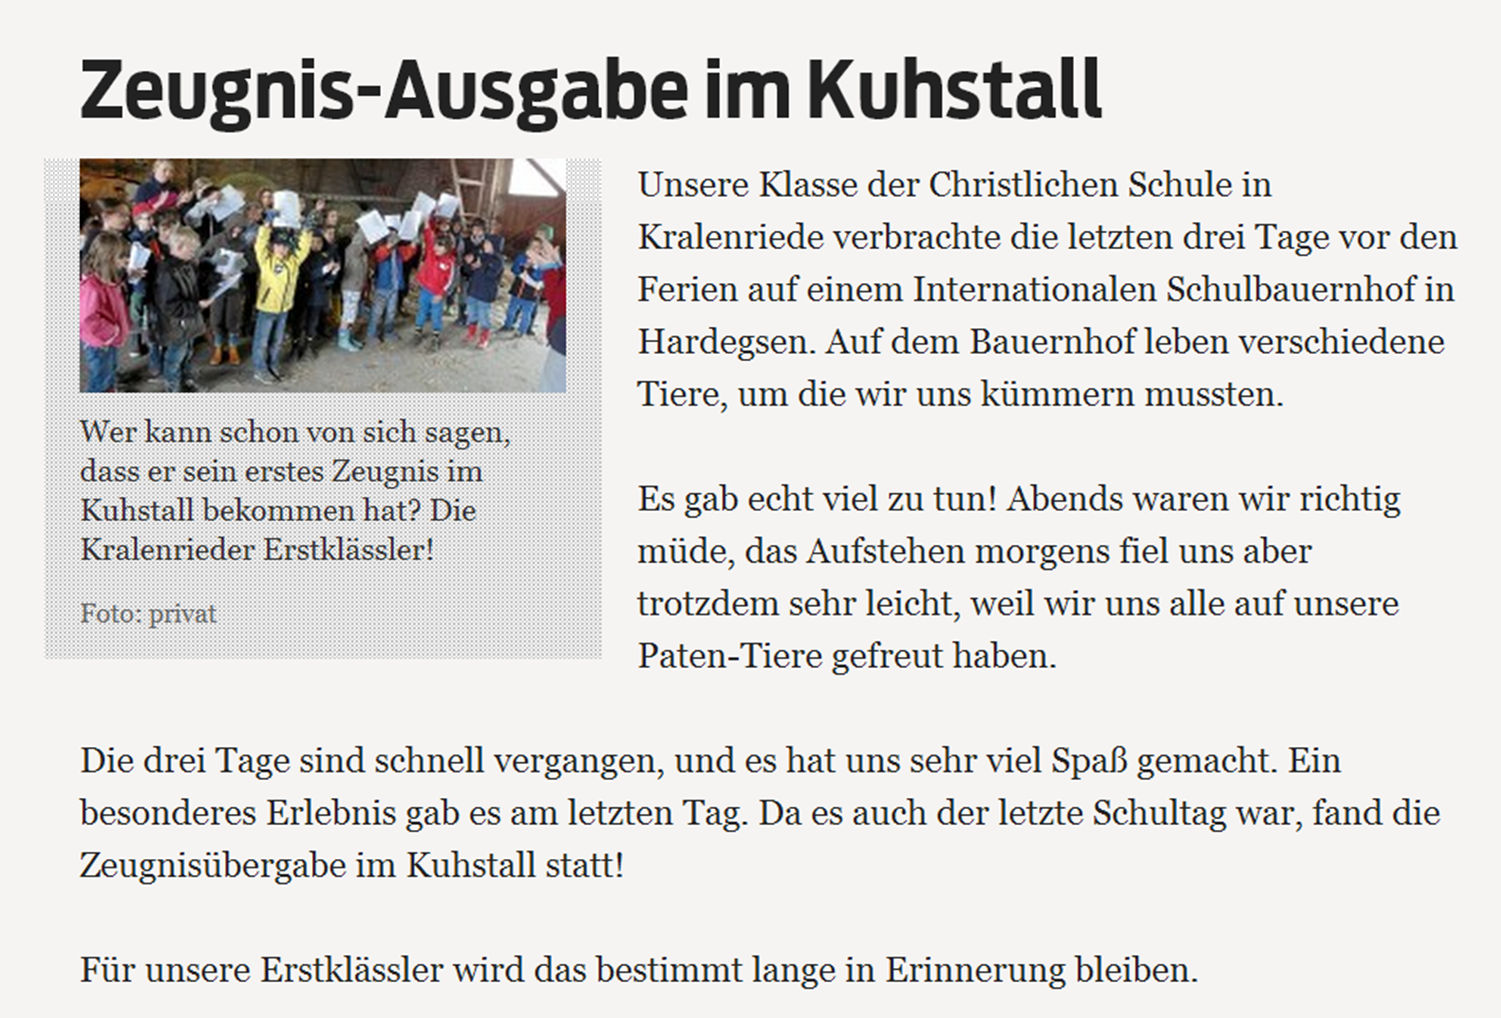 http://neu.csbs.schule/images/presse/bz/Zeugnis im Kuhstall.png - Kuhstall PNG